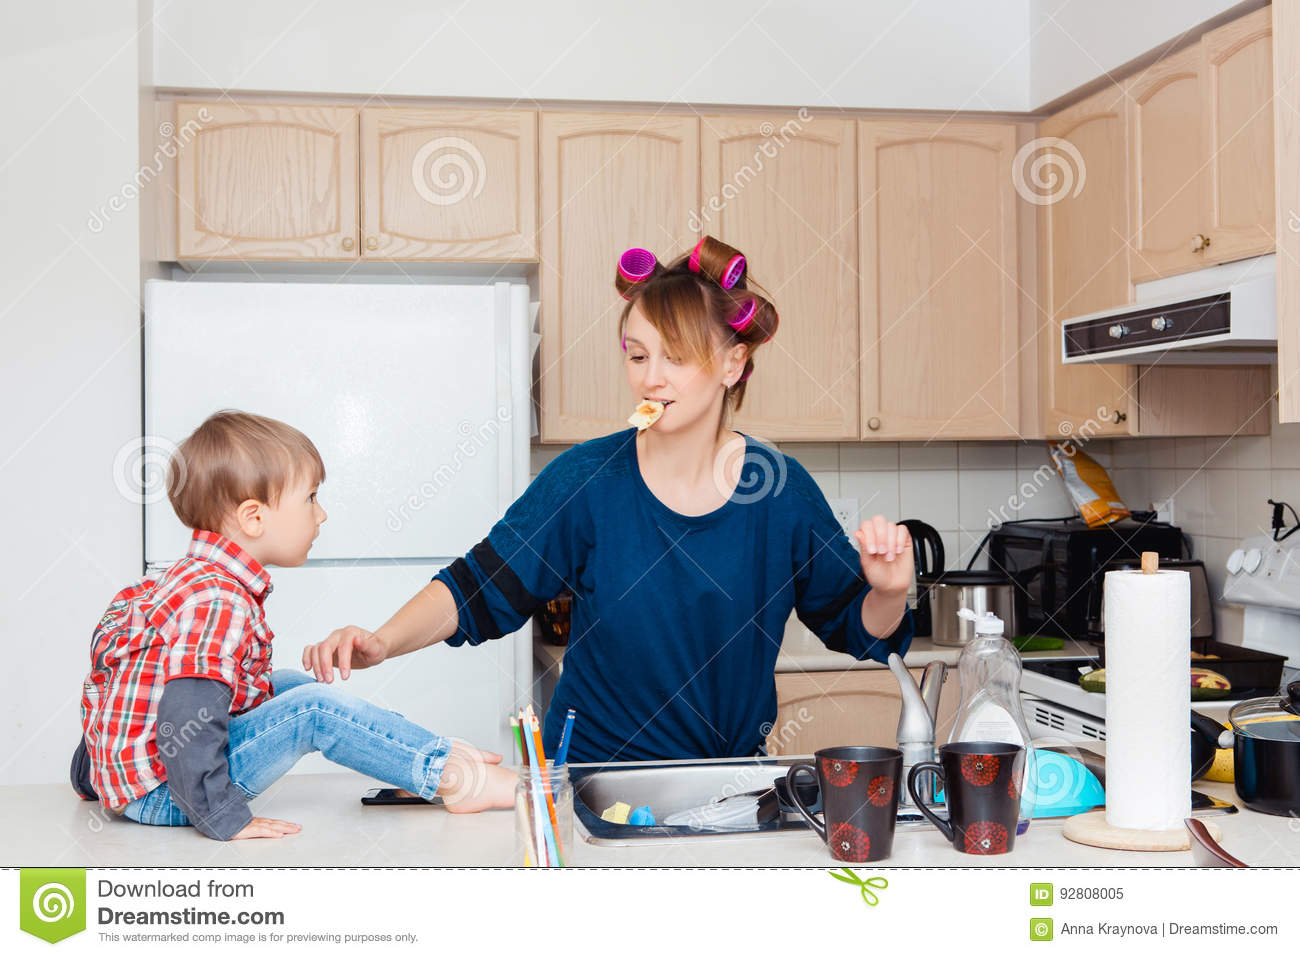 Busy white Caucasian young woman mother housewife with hair-curlers in her hair cooking preparing dinner meal in kitchen